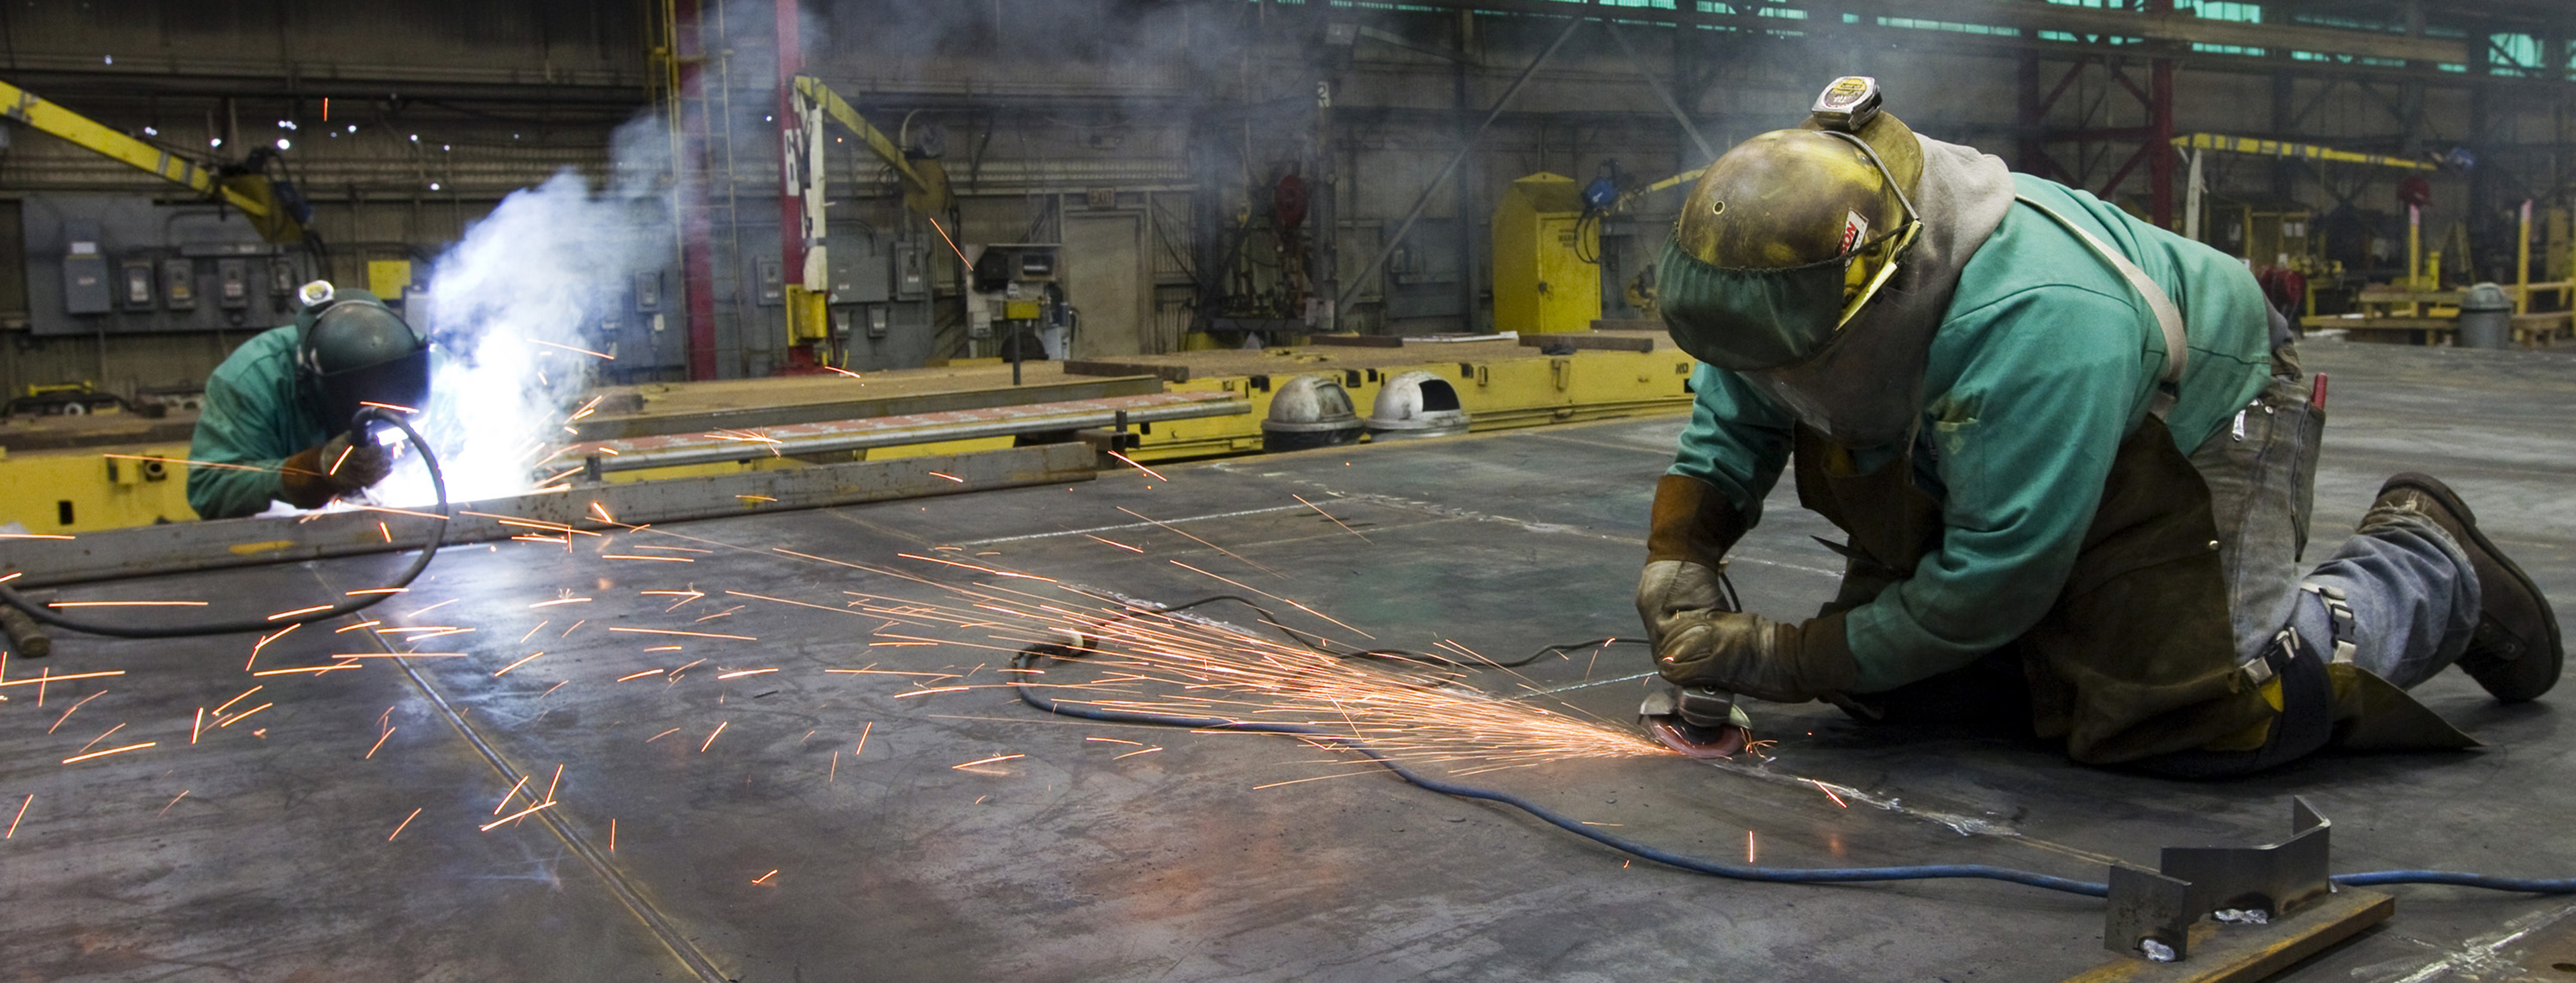 Industrial Production in U.S. Rises 0.3% on Equipment Demand